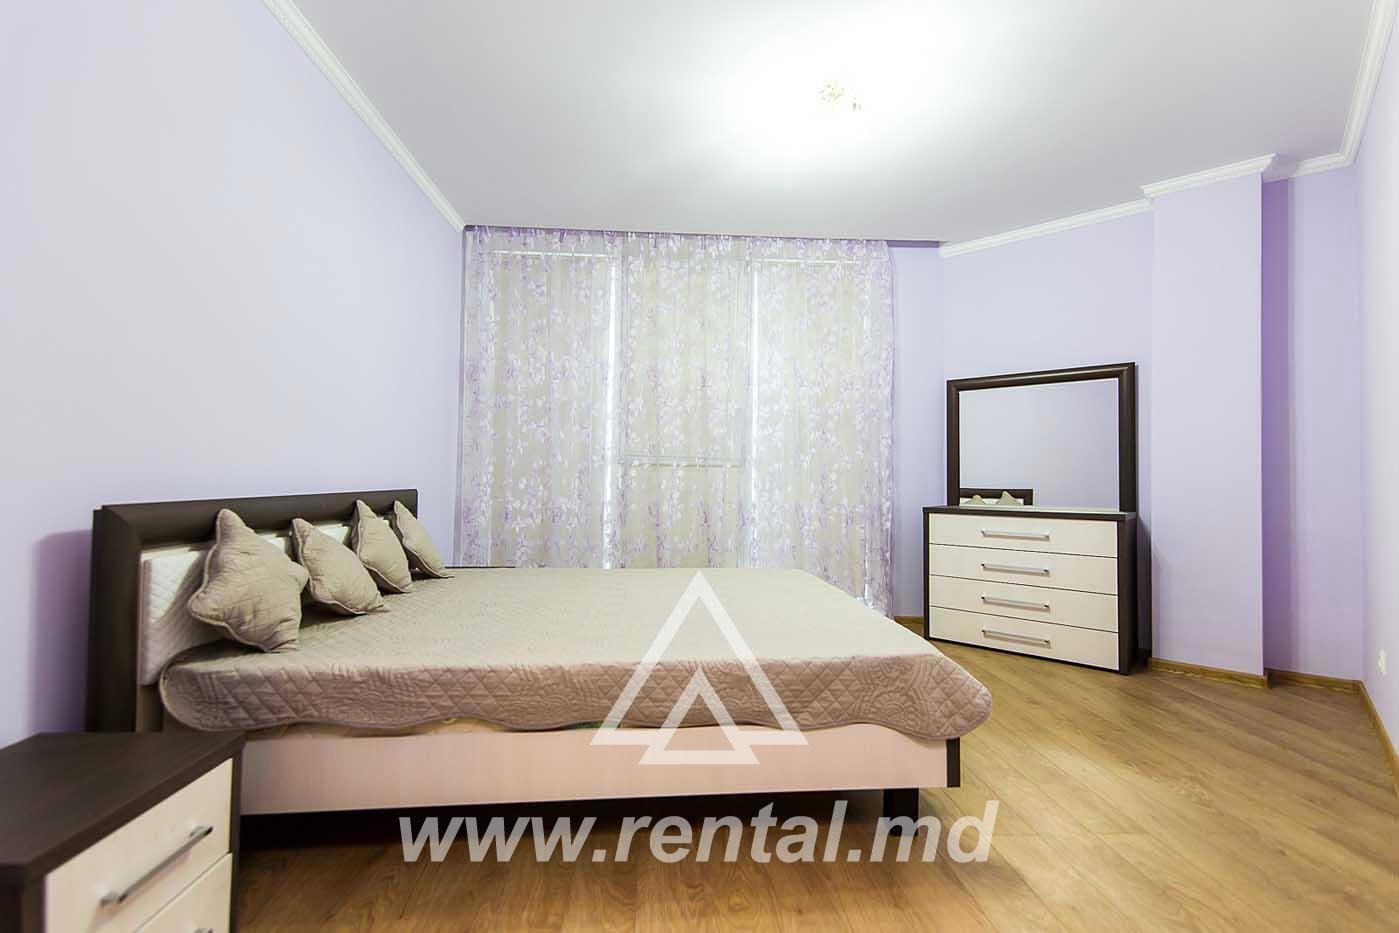 Apartment in the center of Chisinau for rent